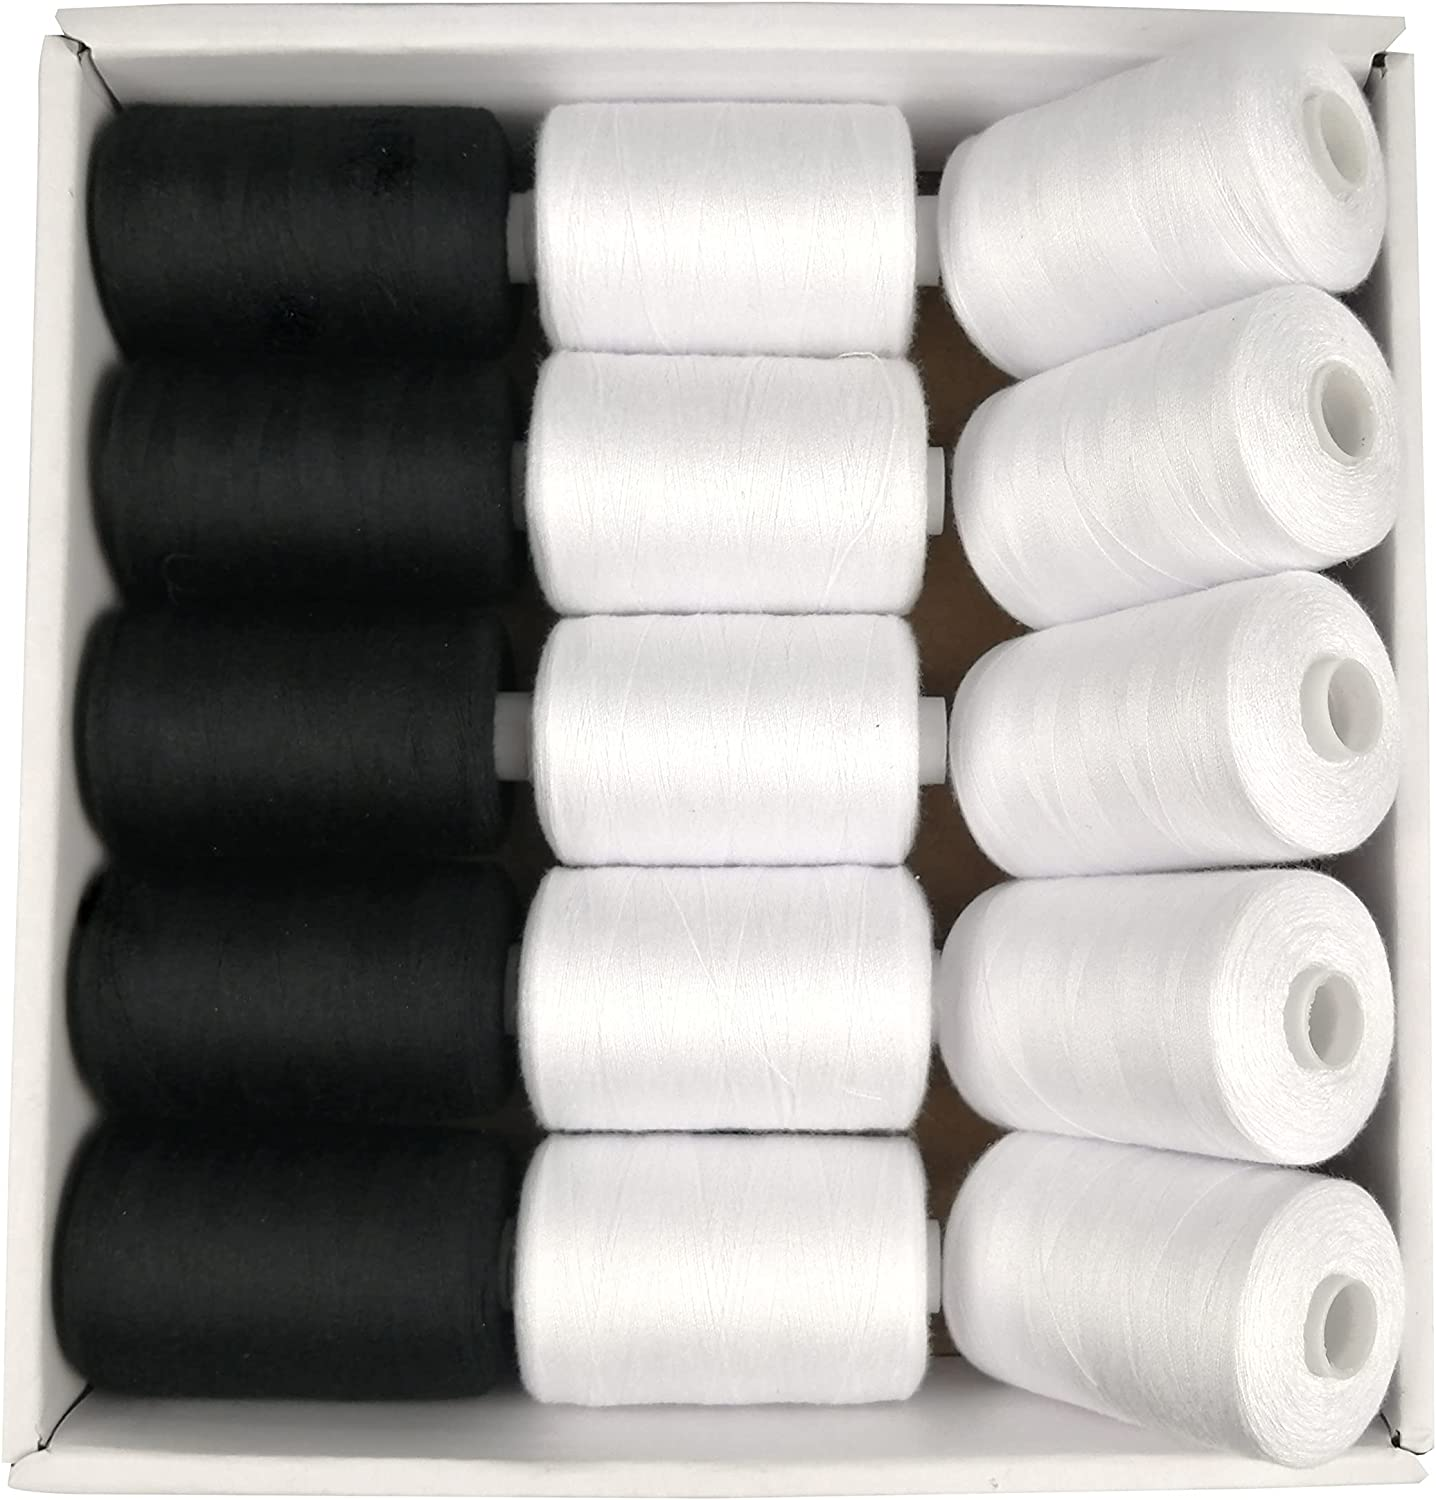 Moon Waves Sewing Machine Thread Clearance SALE! Limited time! 15 Sets 2 Polyester Denver Mall Colors 40S